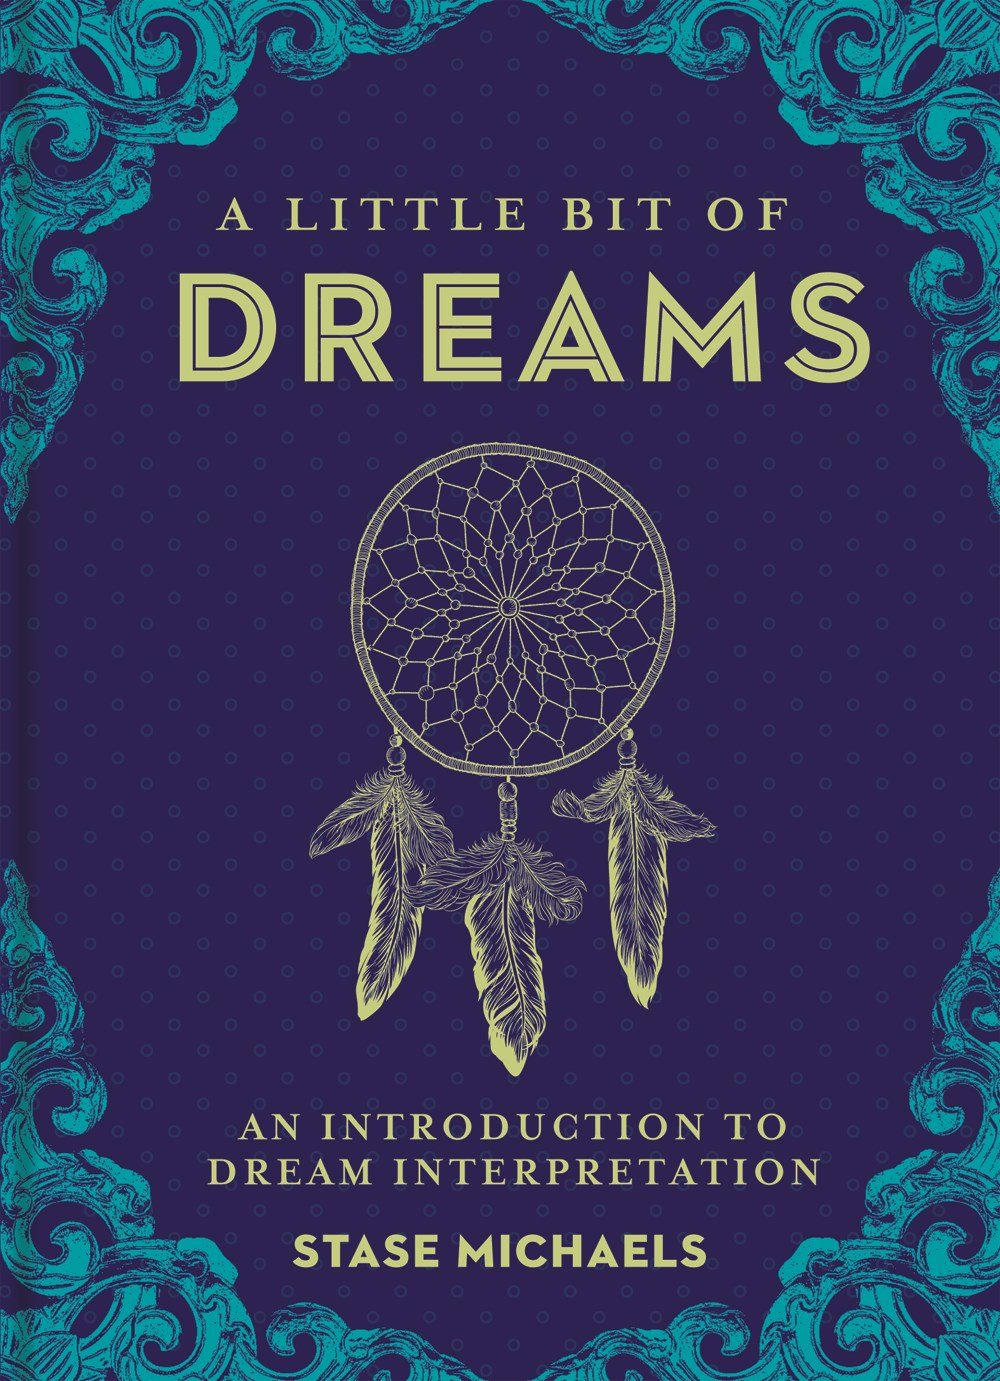 The dream book Tablet, what dreams the tablet in a dream to see 16